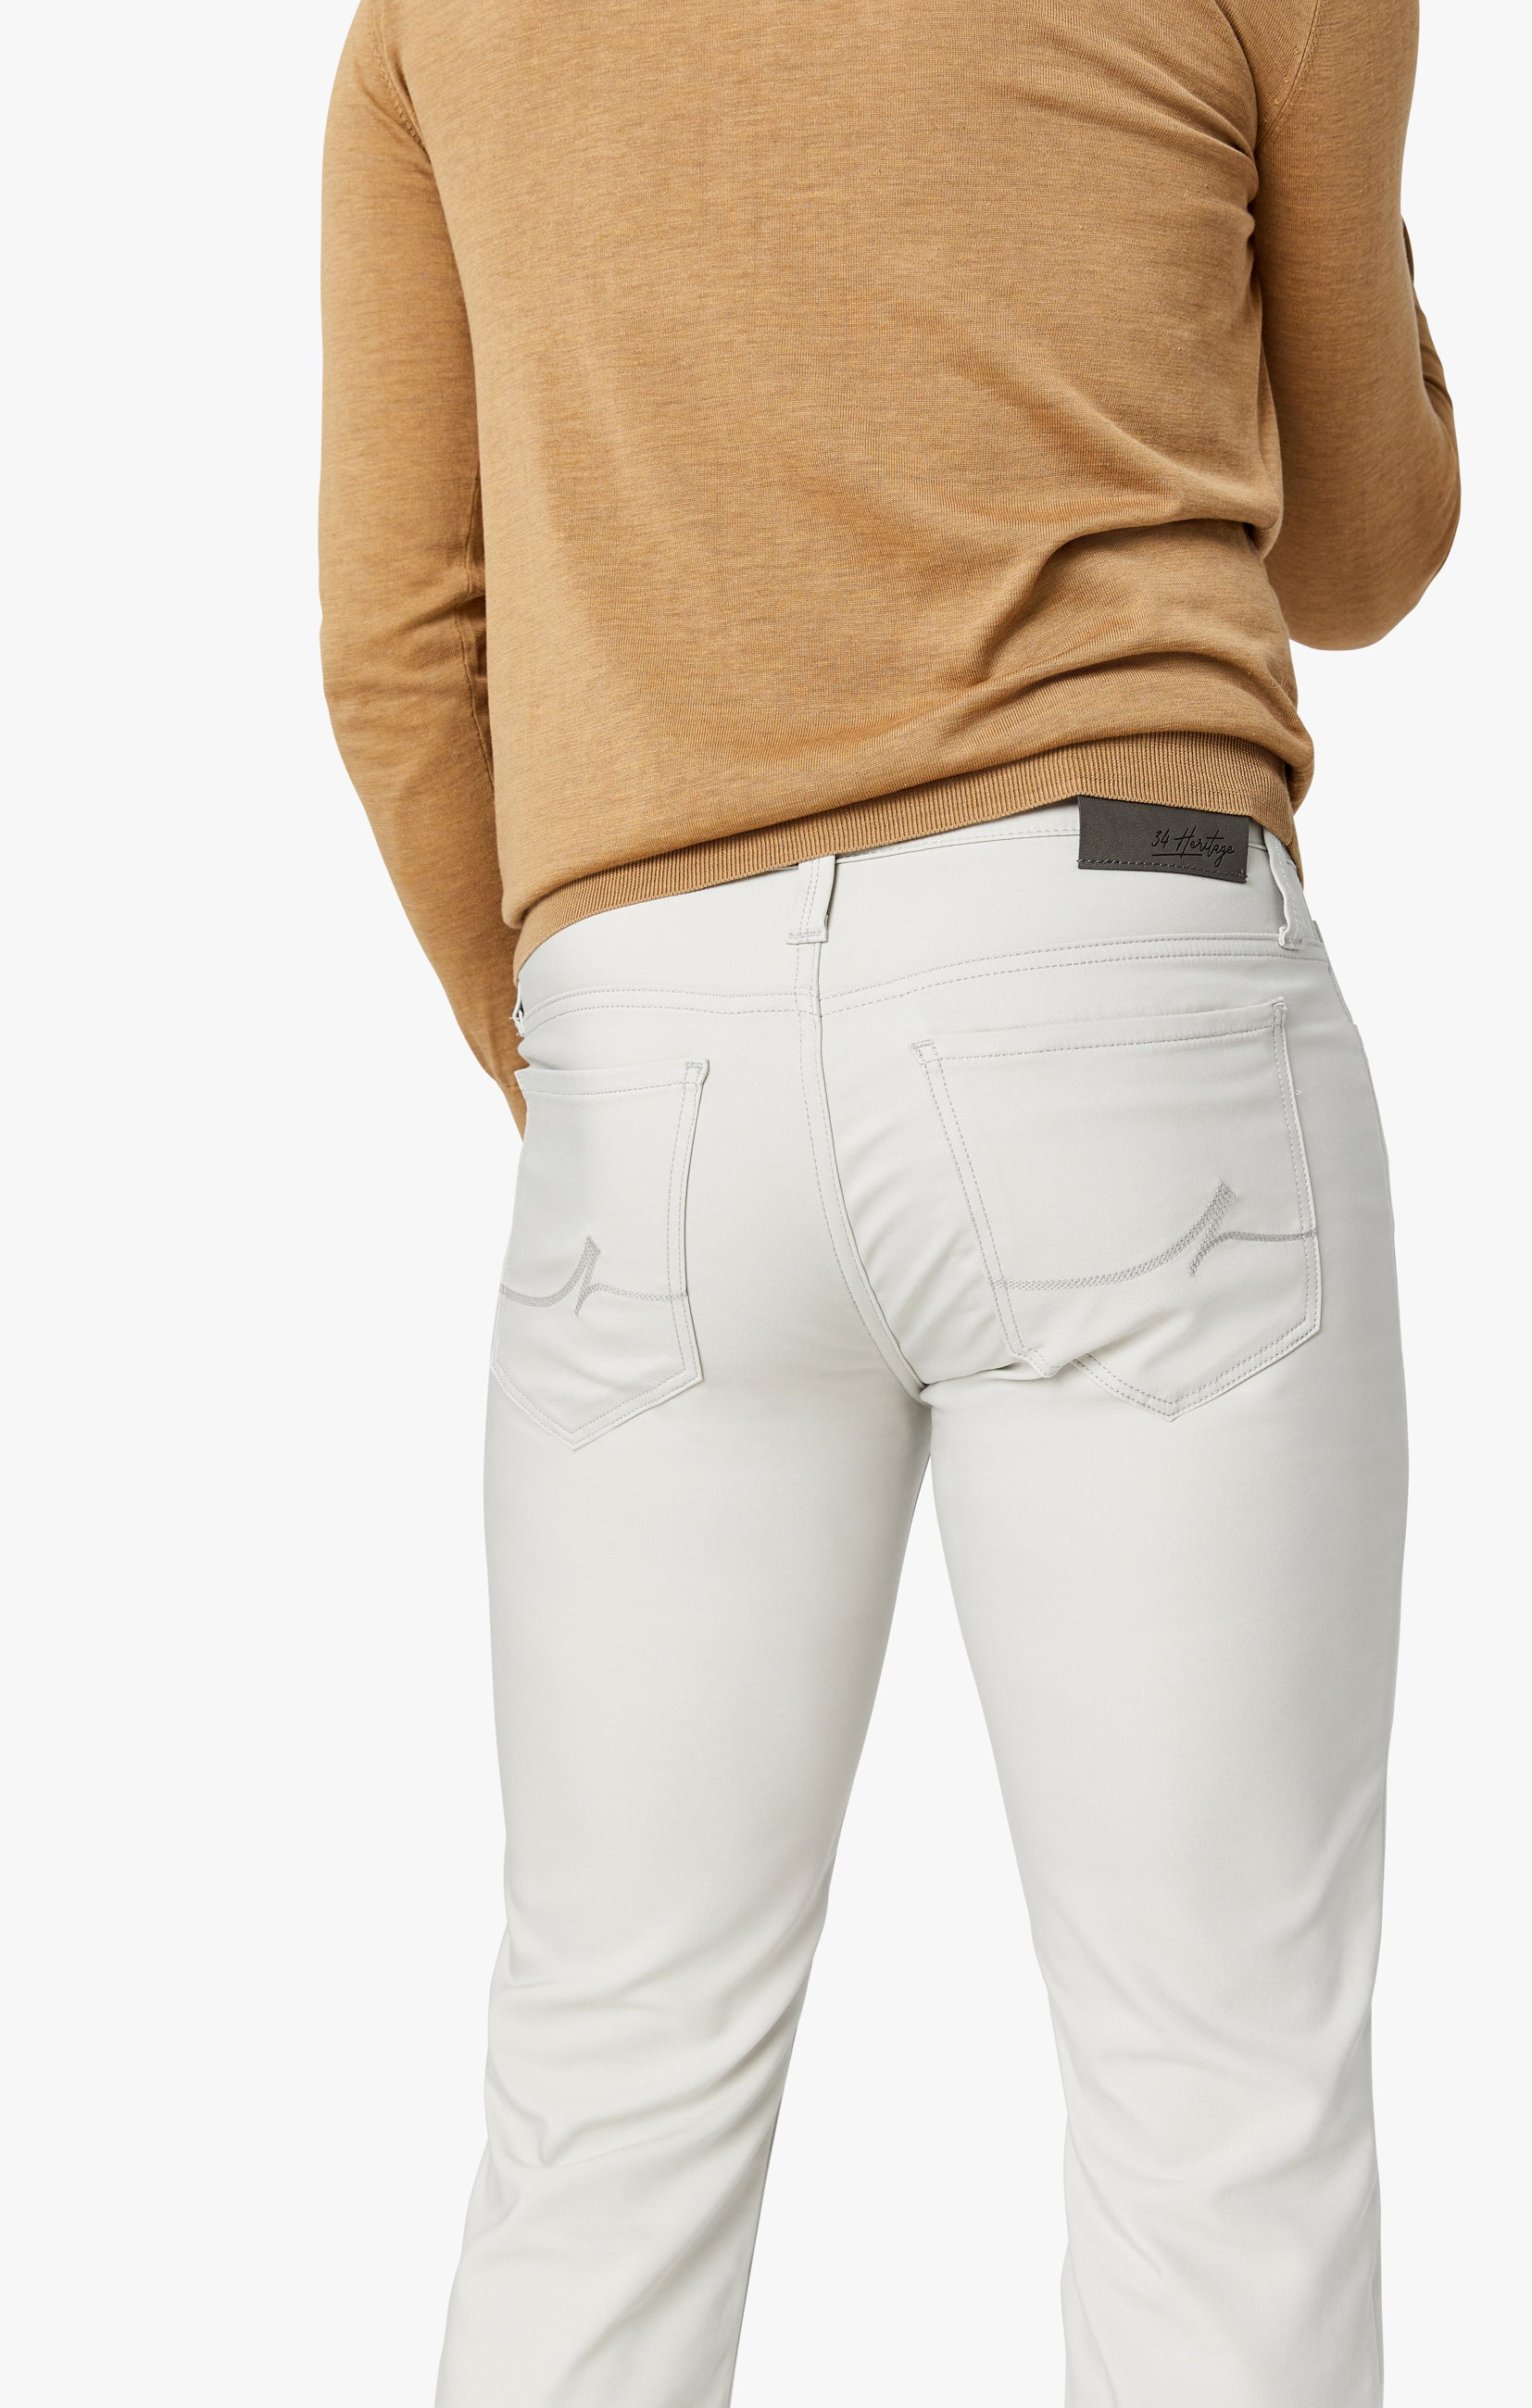 Charisma Classic Fit Jeans in Pearl Commuter Image 9